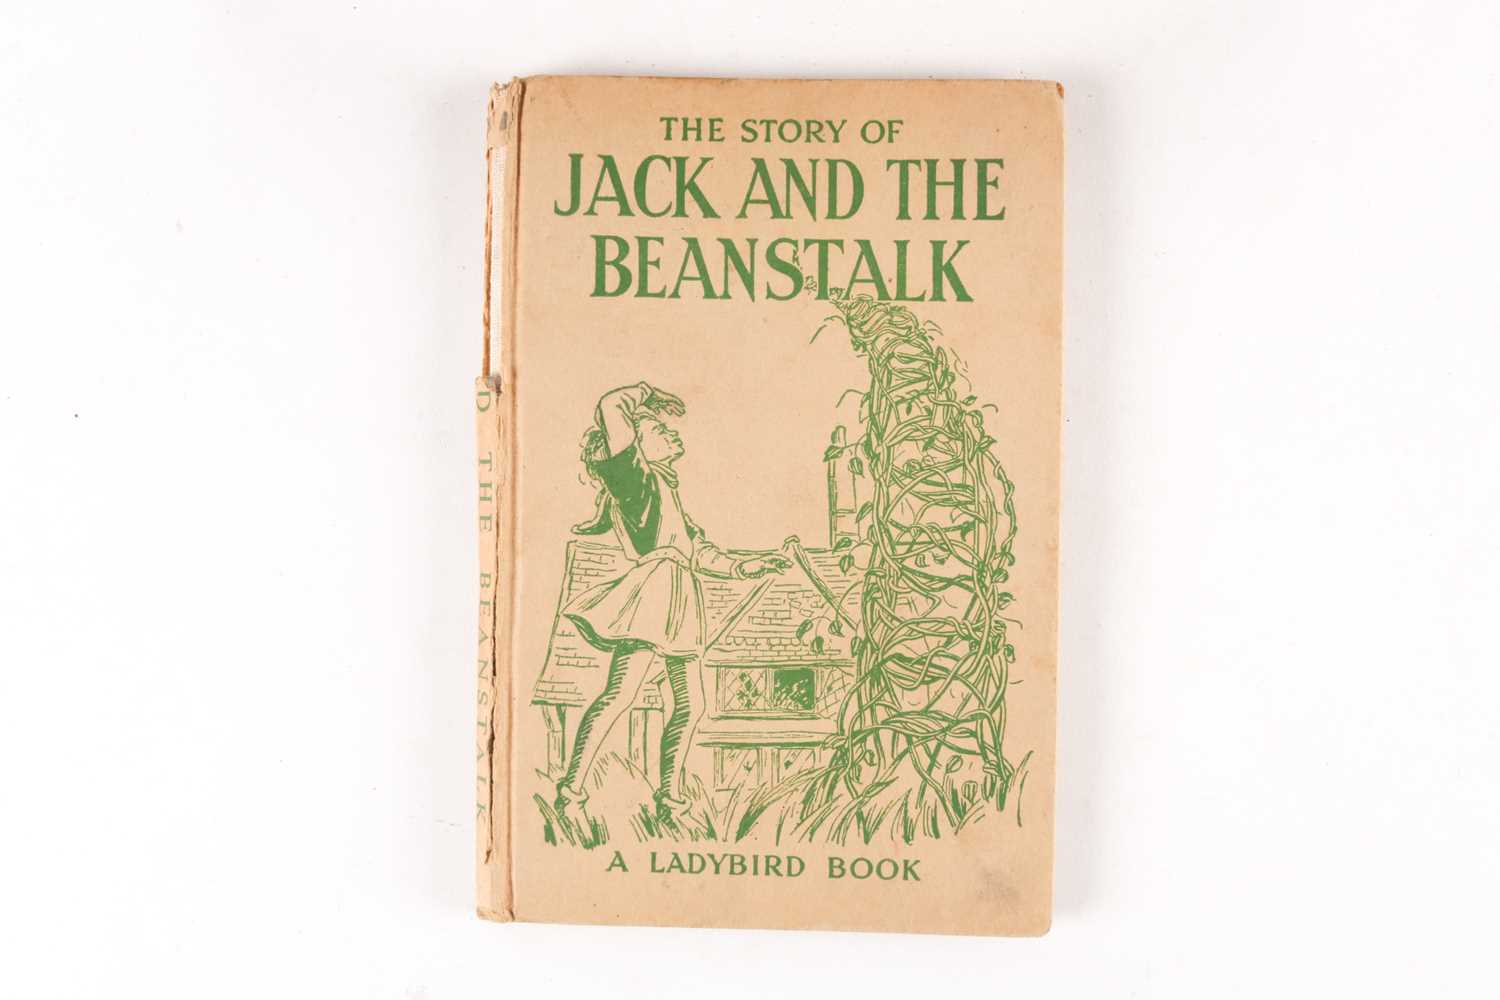 Princess Diana's childhood copy of The Story of Jack and the Beanstalk